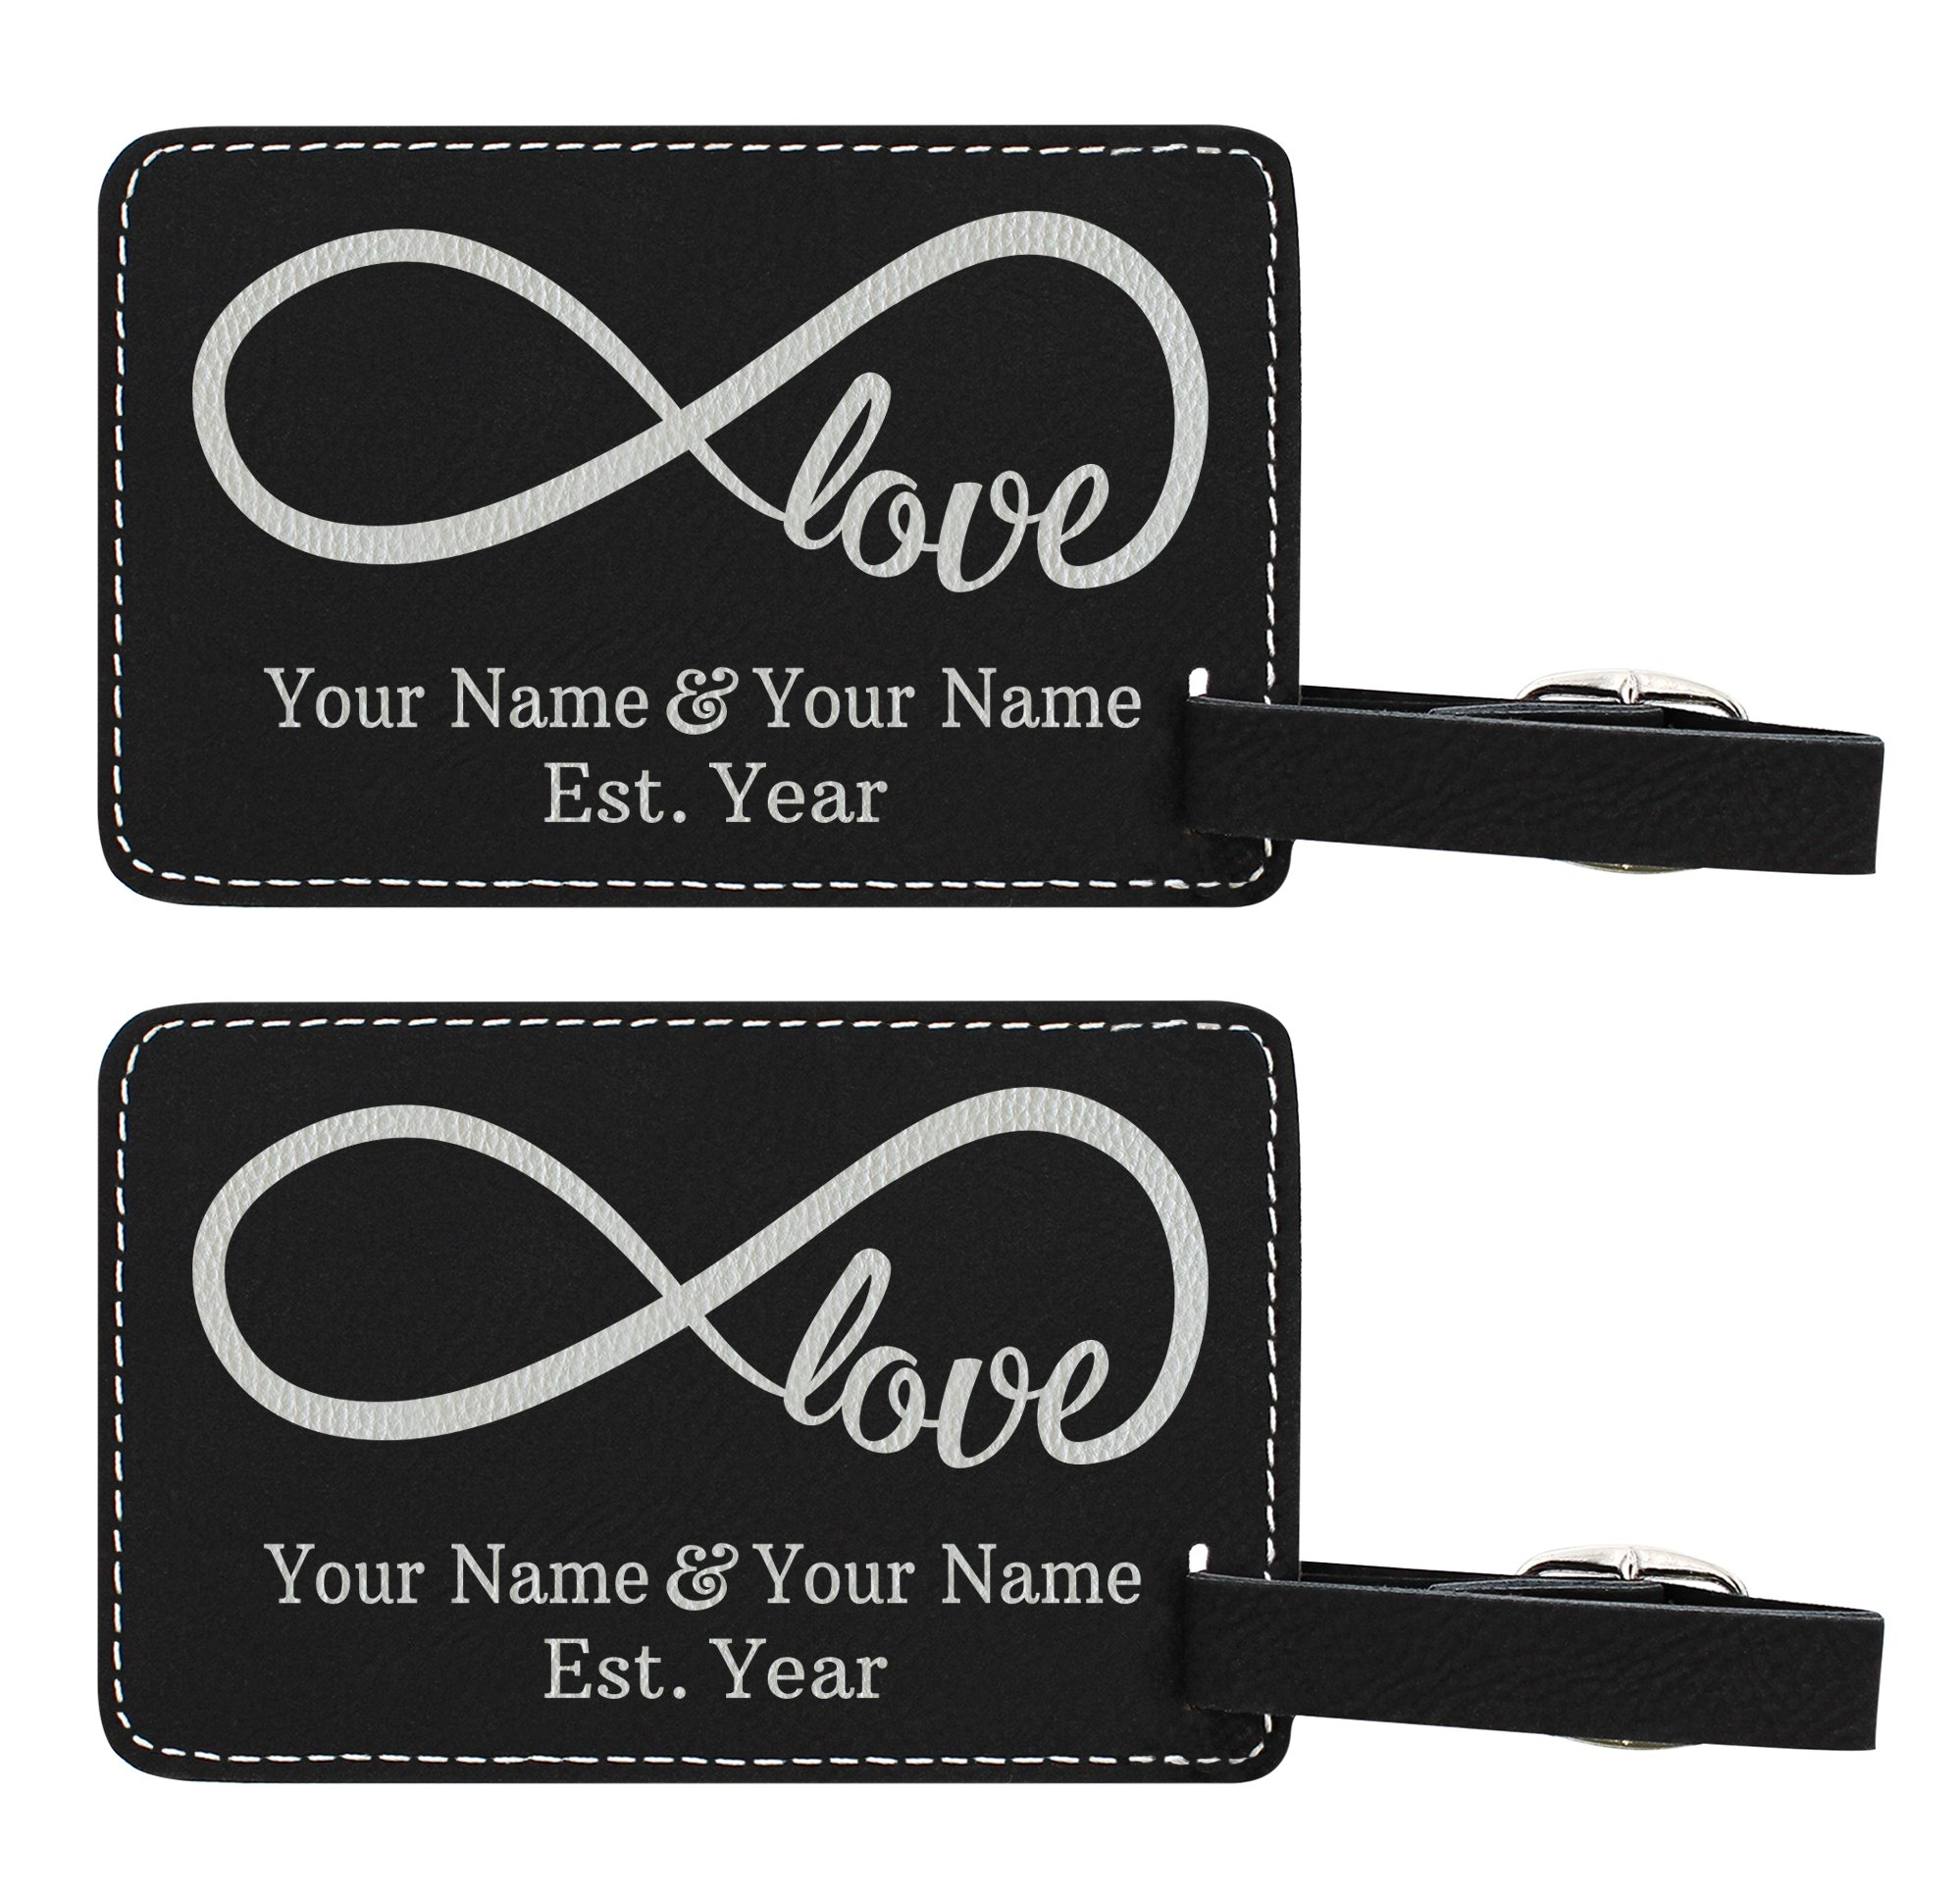 Personalized Wedding Anniversary Gifts Custom Names & Date Infinite Love Personalized Wedding Gifts Personalized 2-pack Laser Engraved Leather Luggage Tags Black